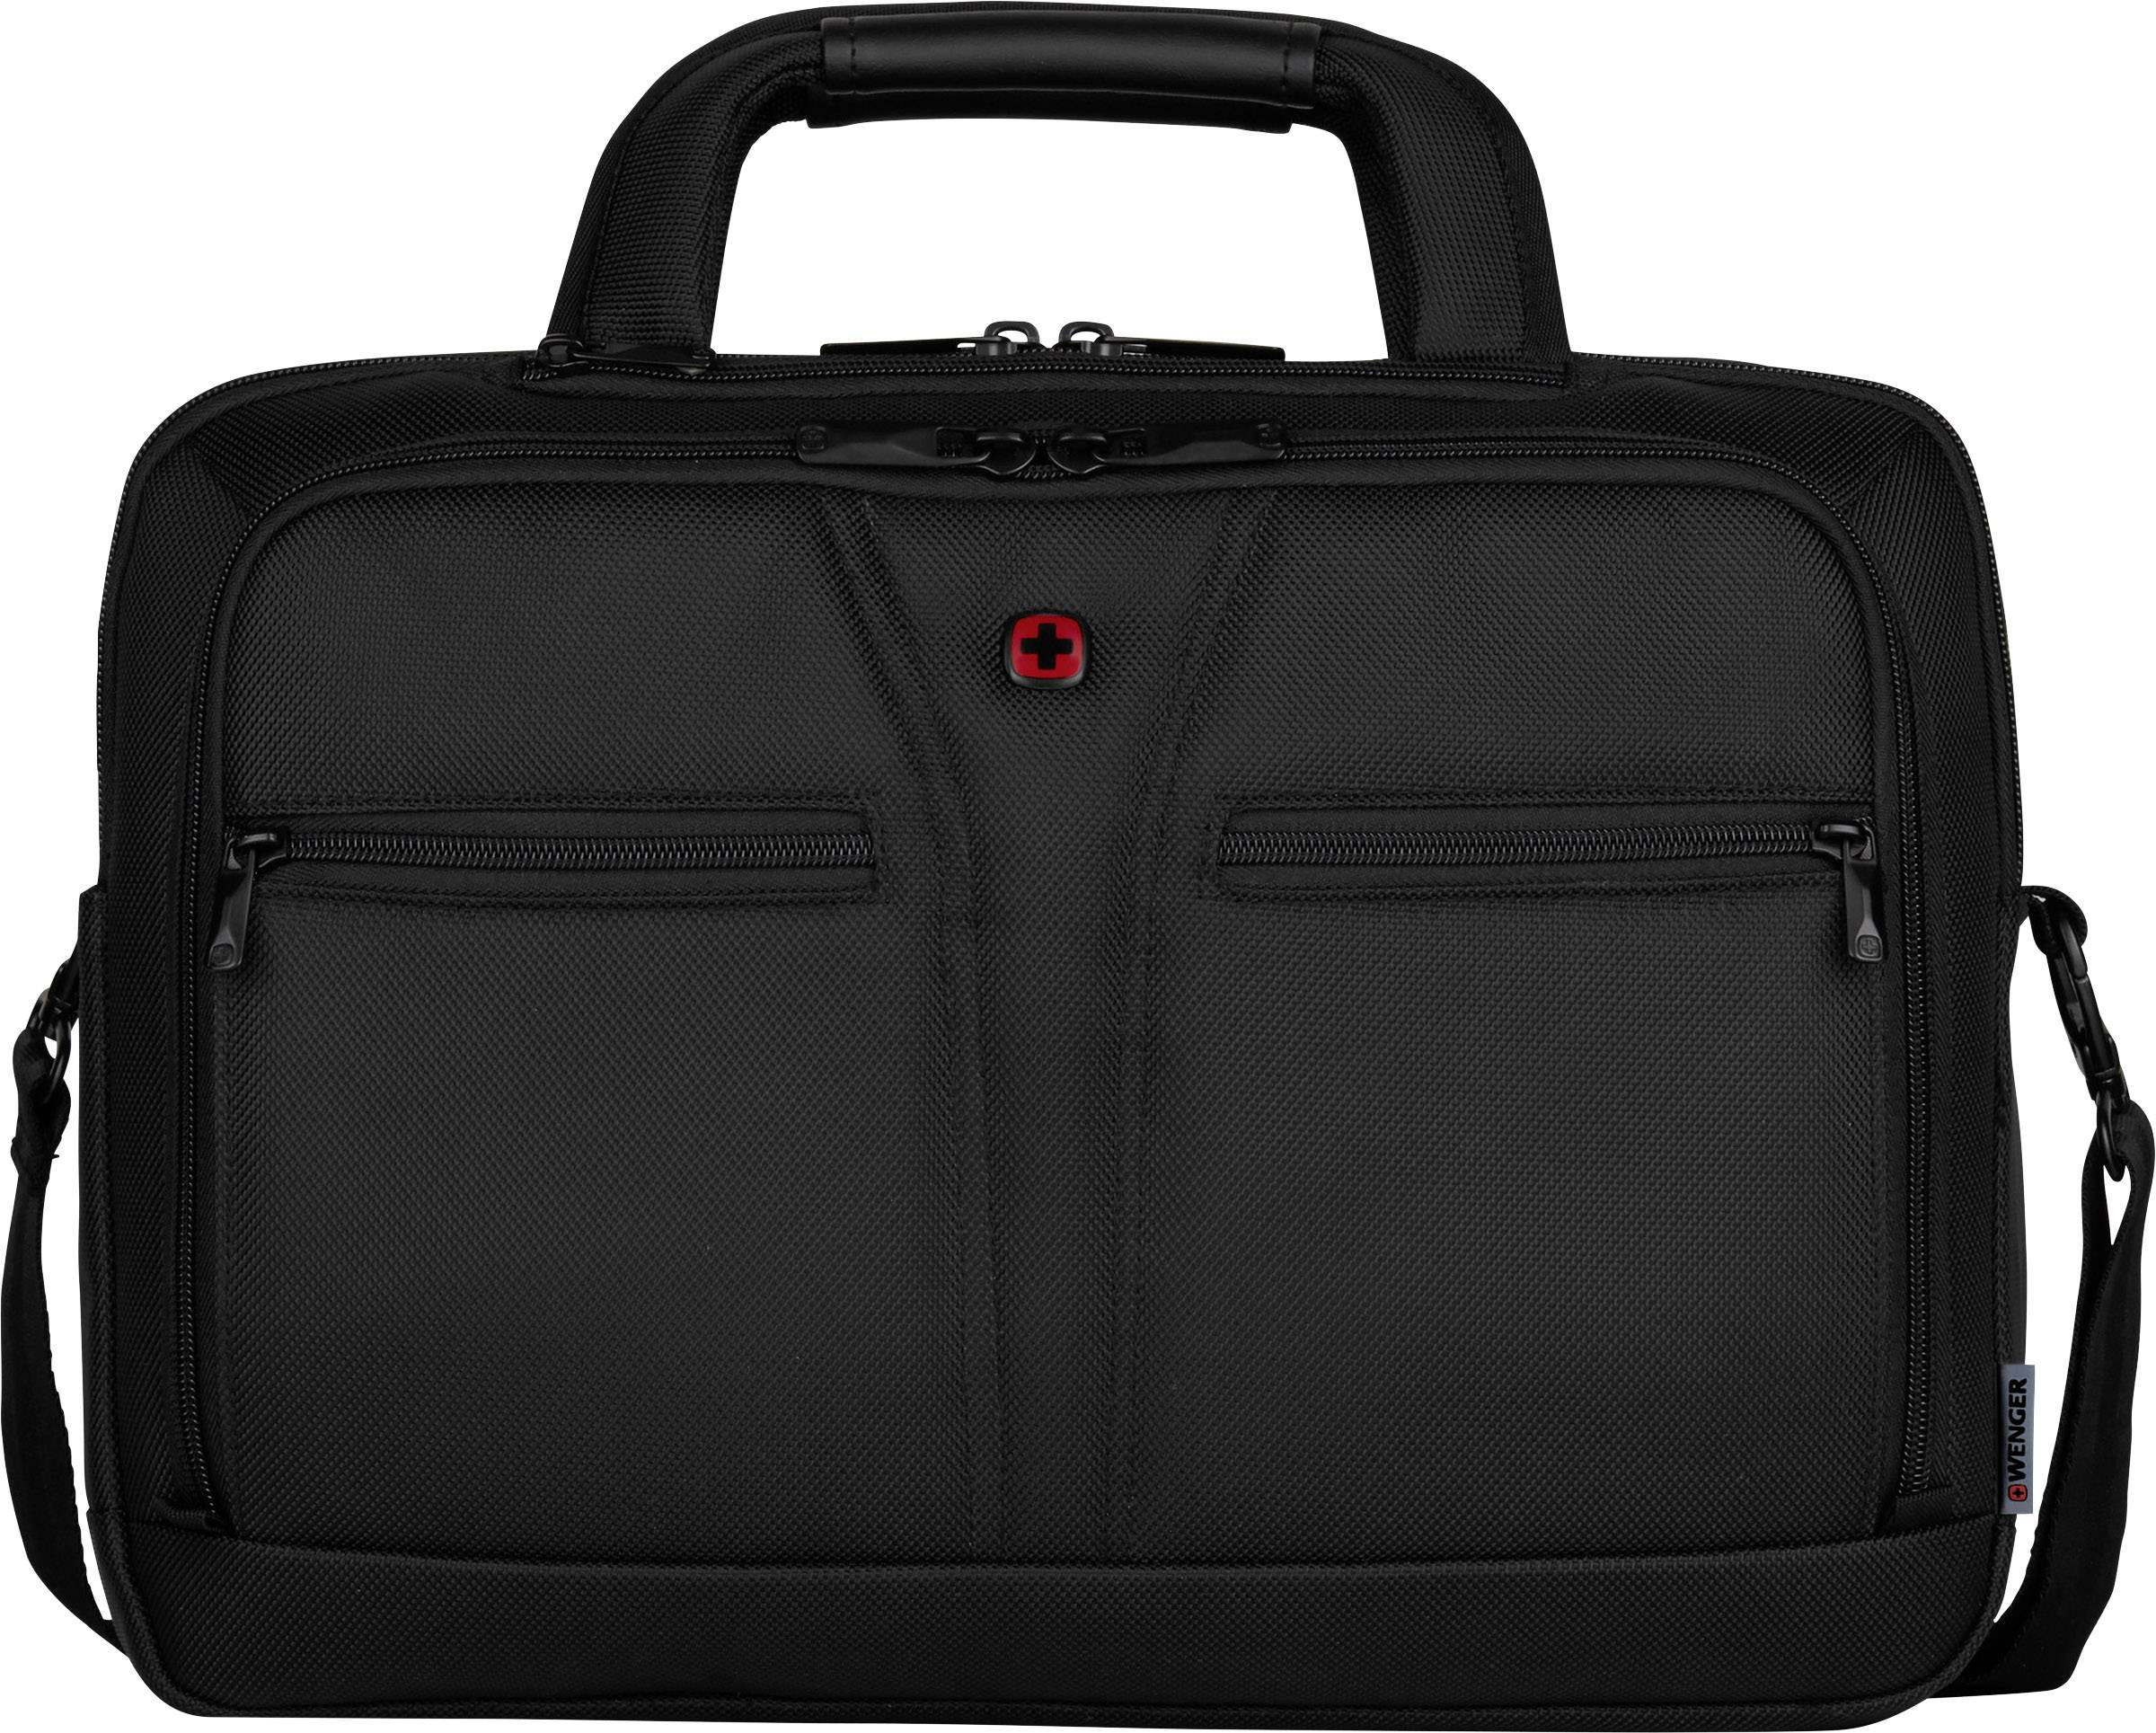 Wenger Laptop Bag Bc Pro Suitable For